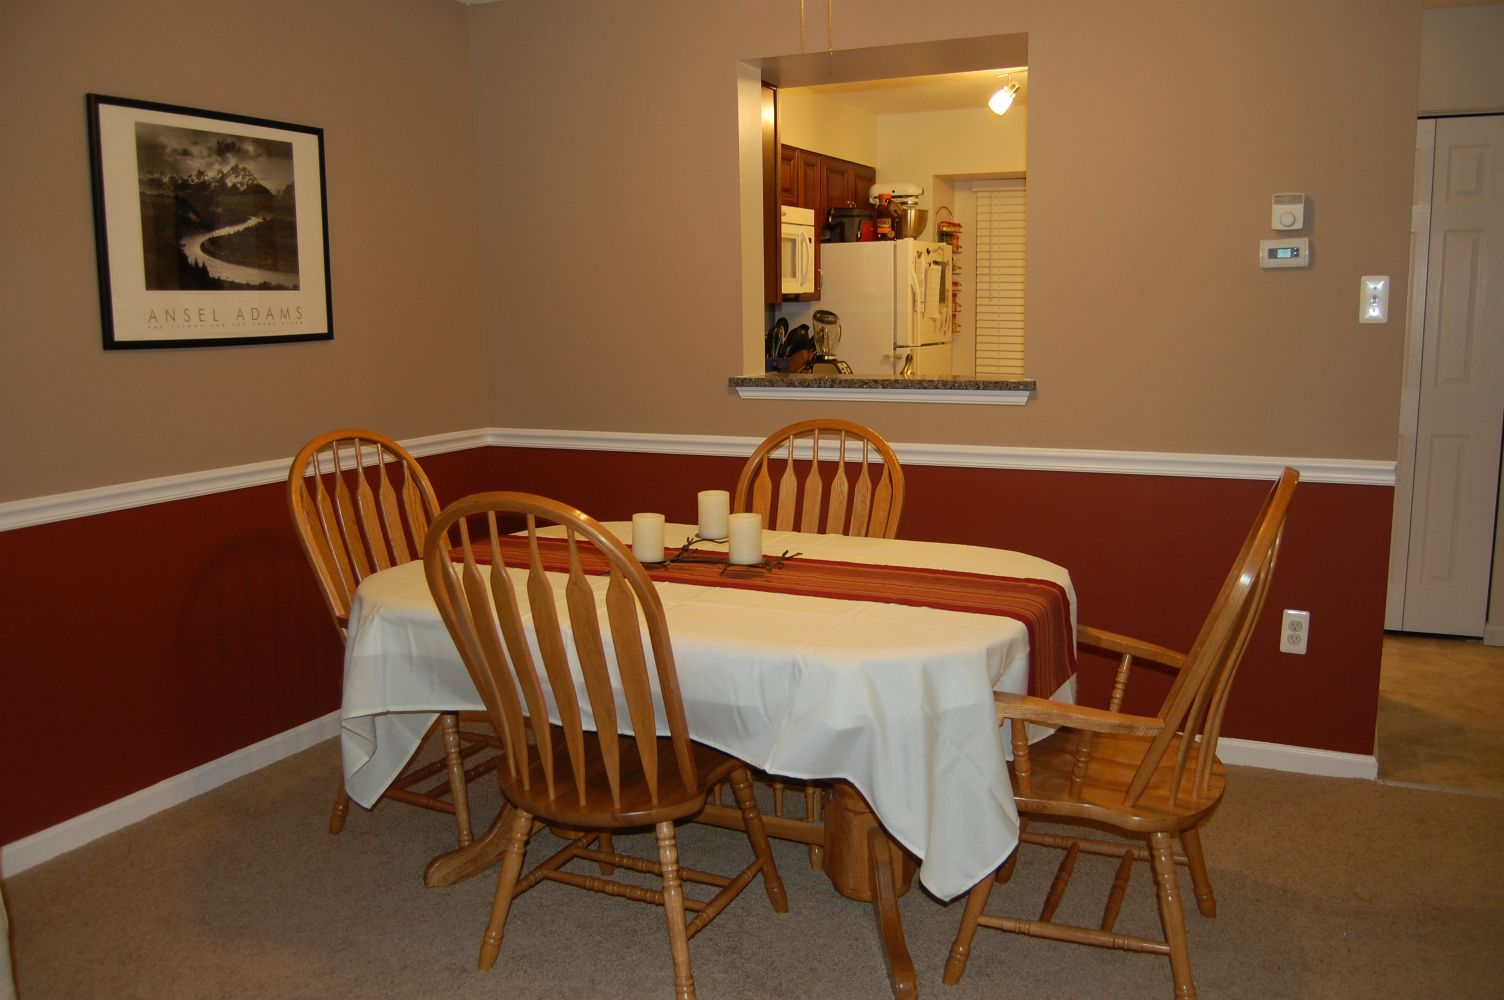 Chair Rail Dining Room. Chair Rail In Dining Room | Rooms With Rails M